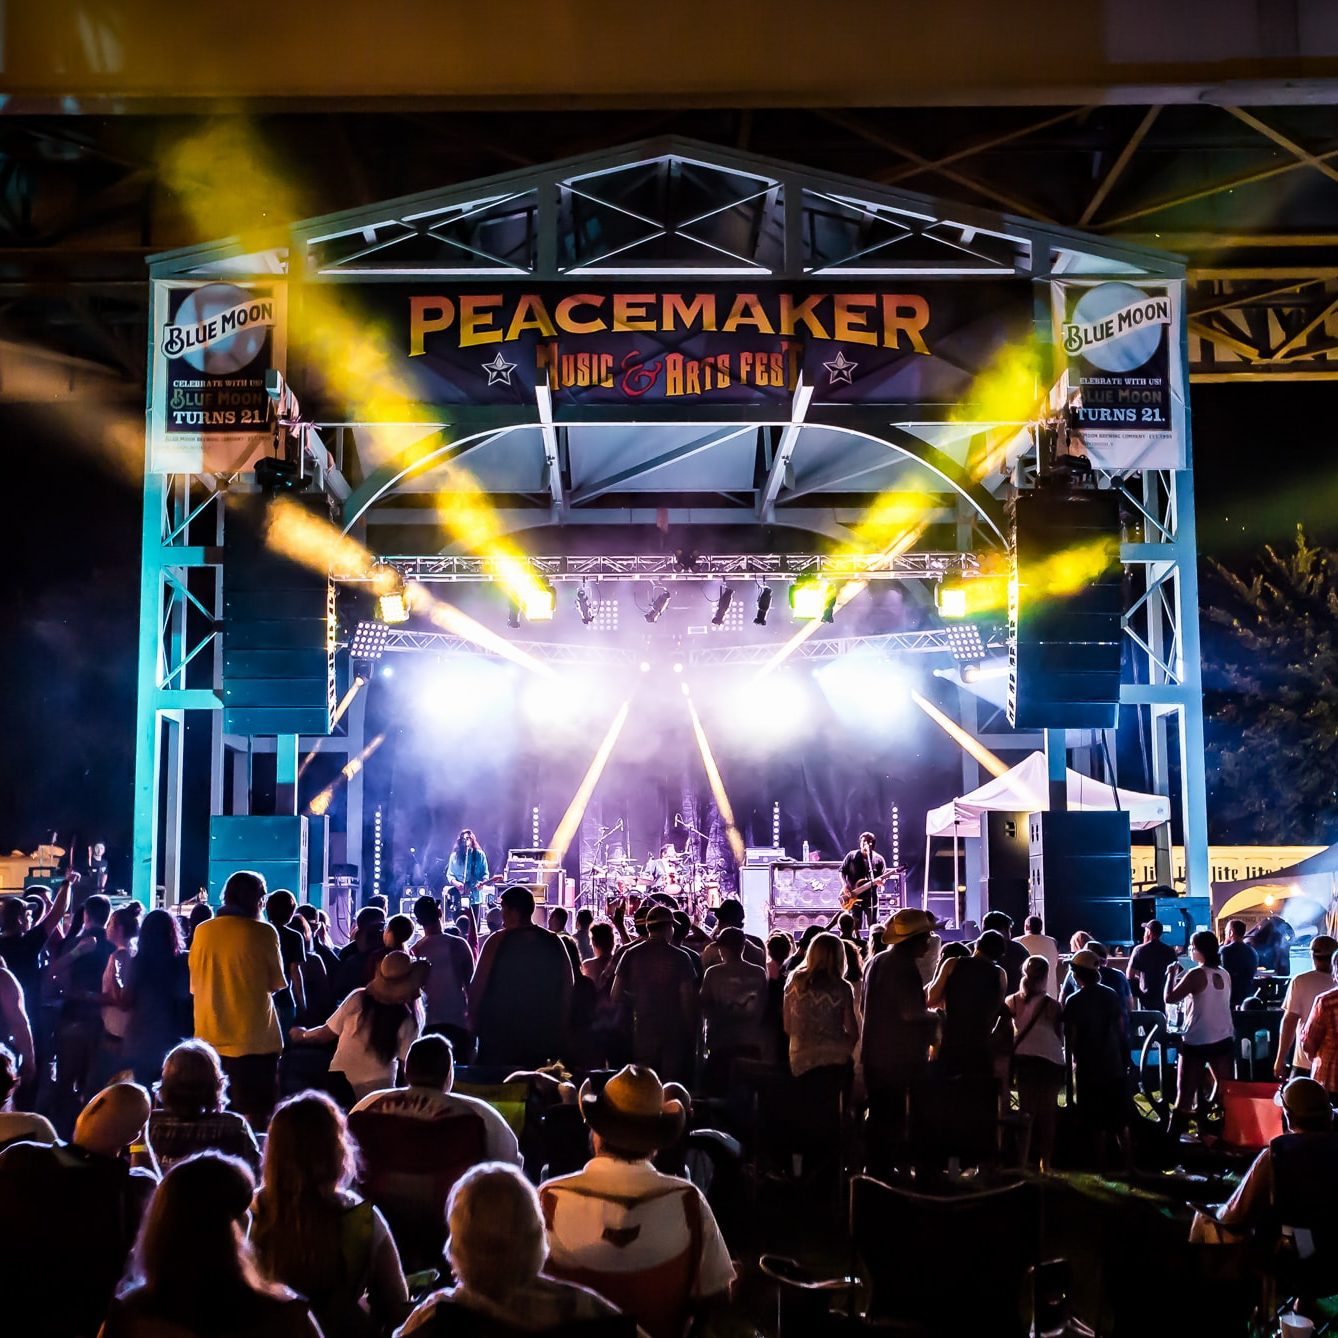 Peacemaker Arts & Music Festival